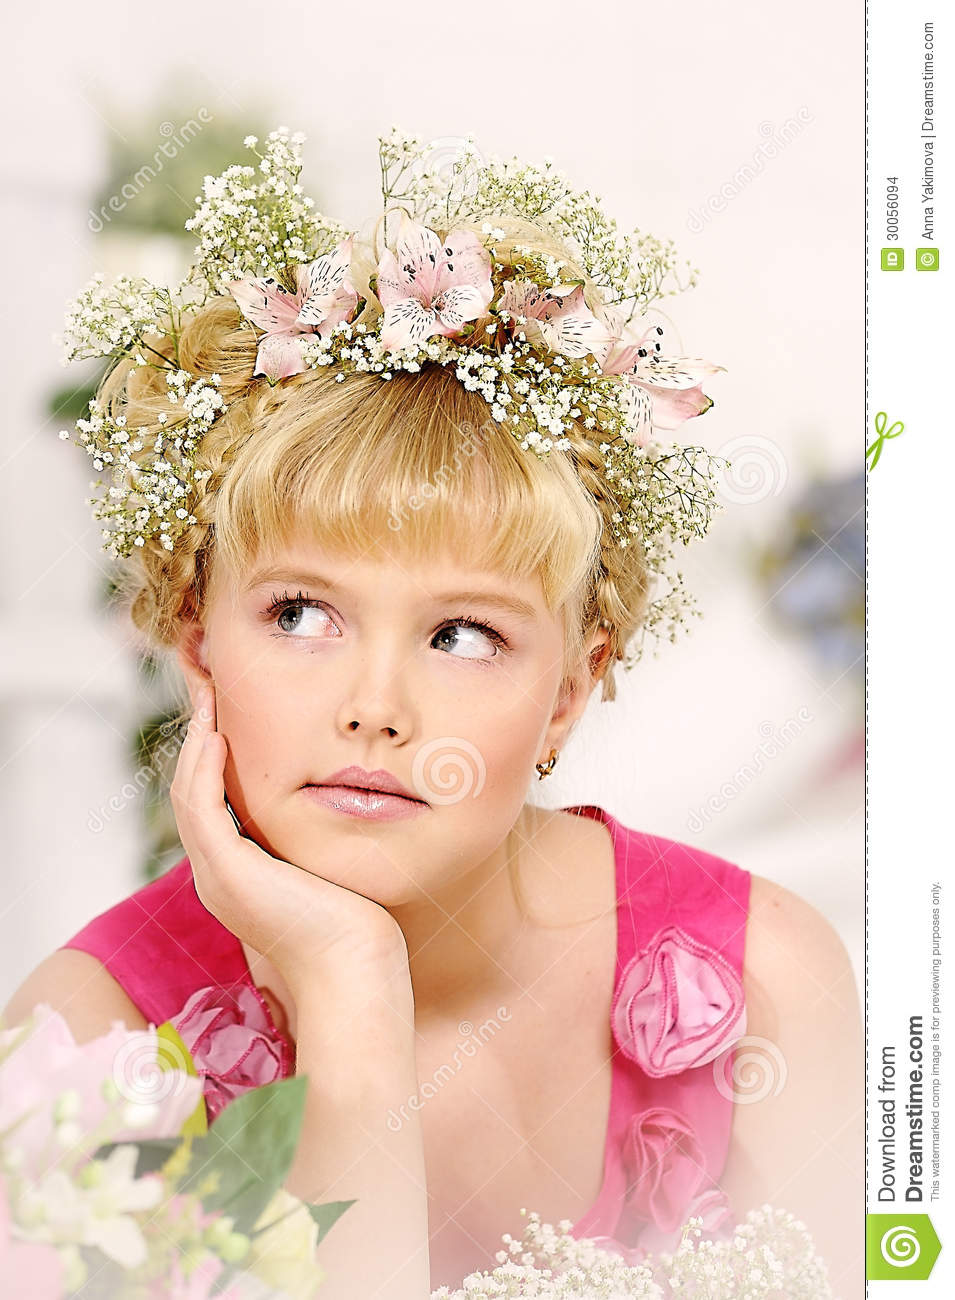 Young flower girl stock photo image of blossom catholic 30056094 young girl with a wreath of flowers on her head izmirmasajfo